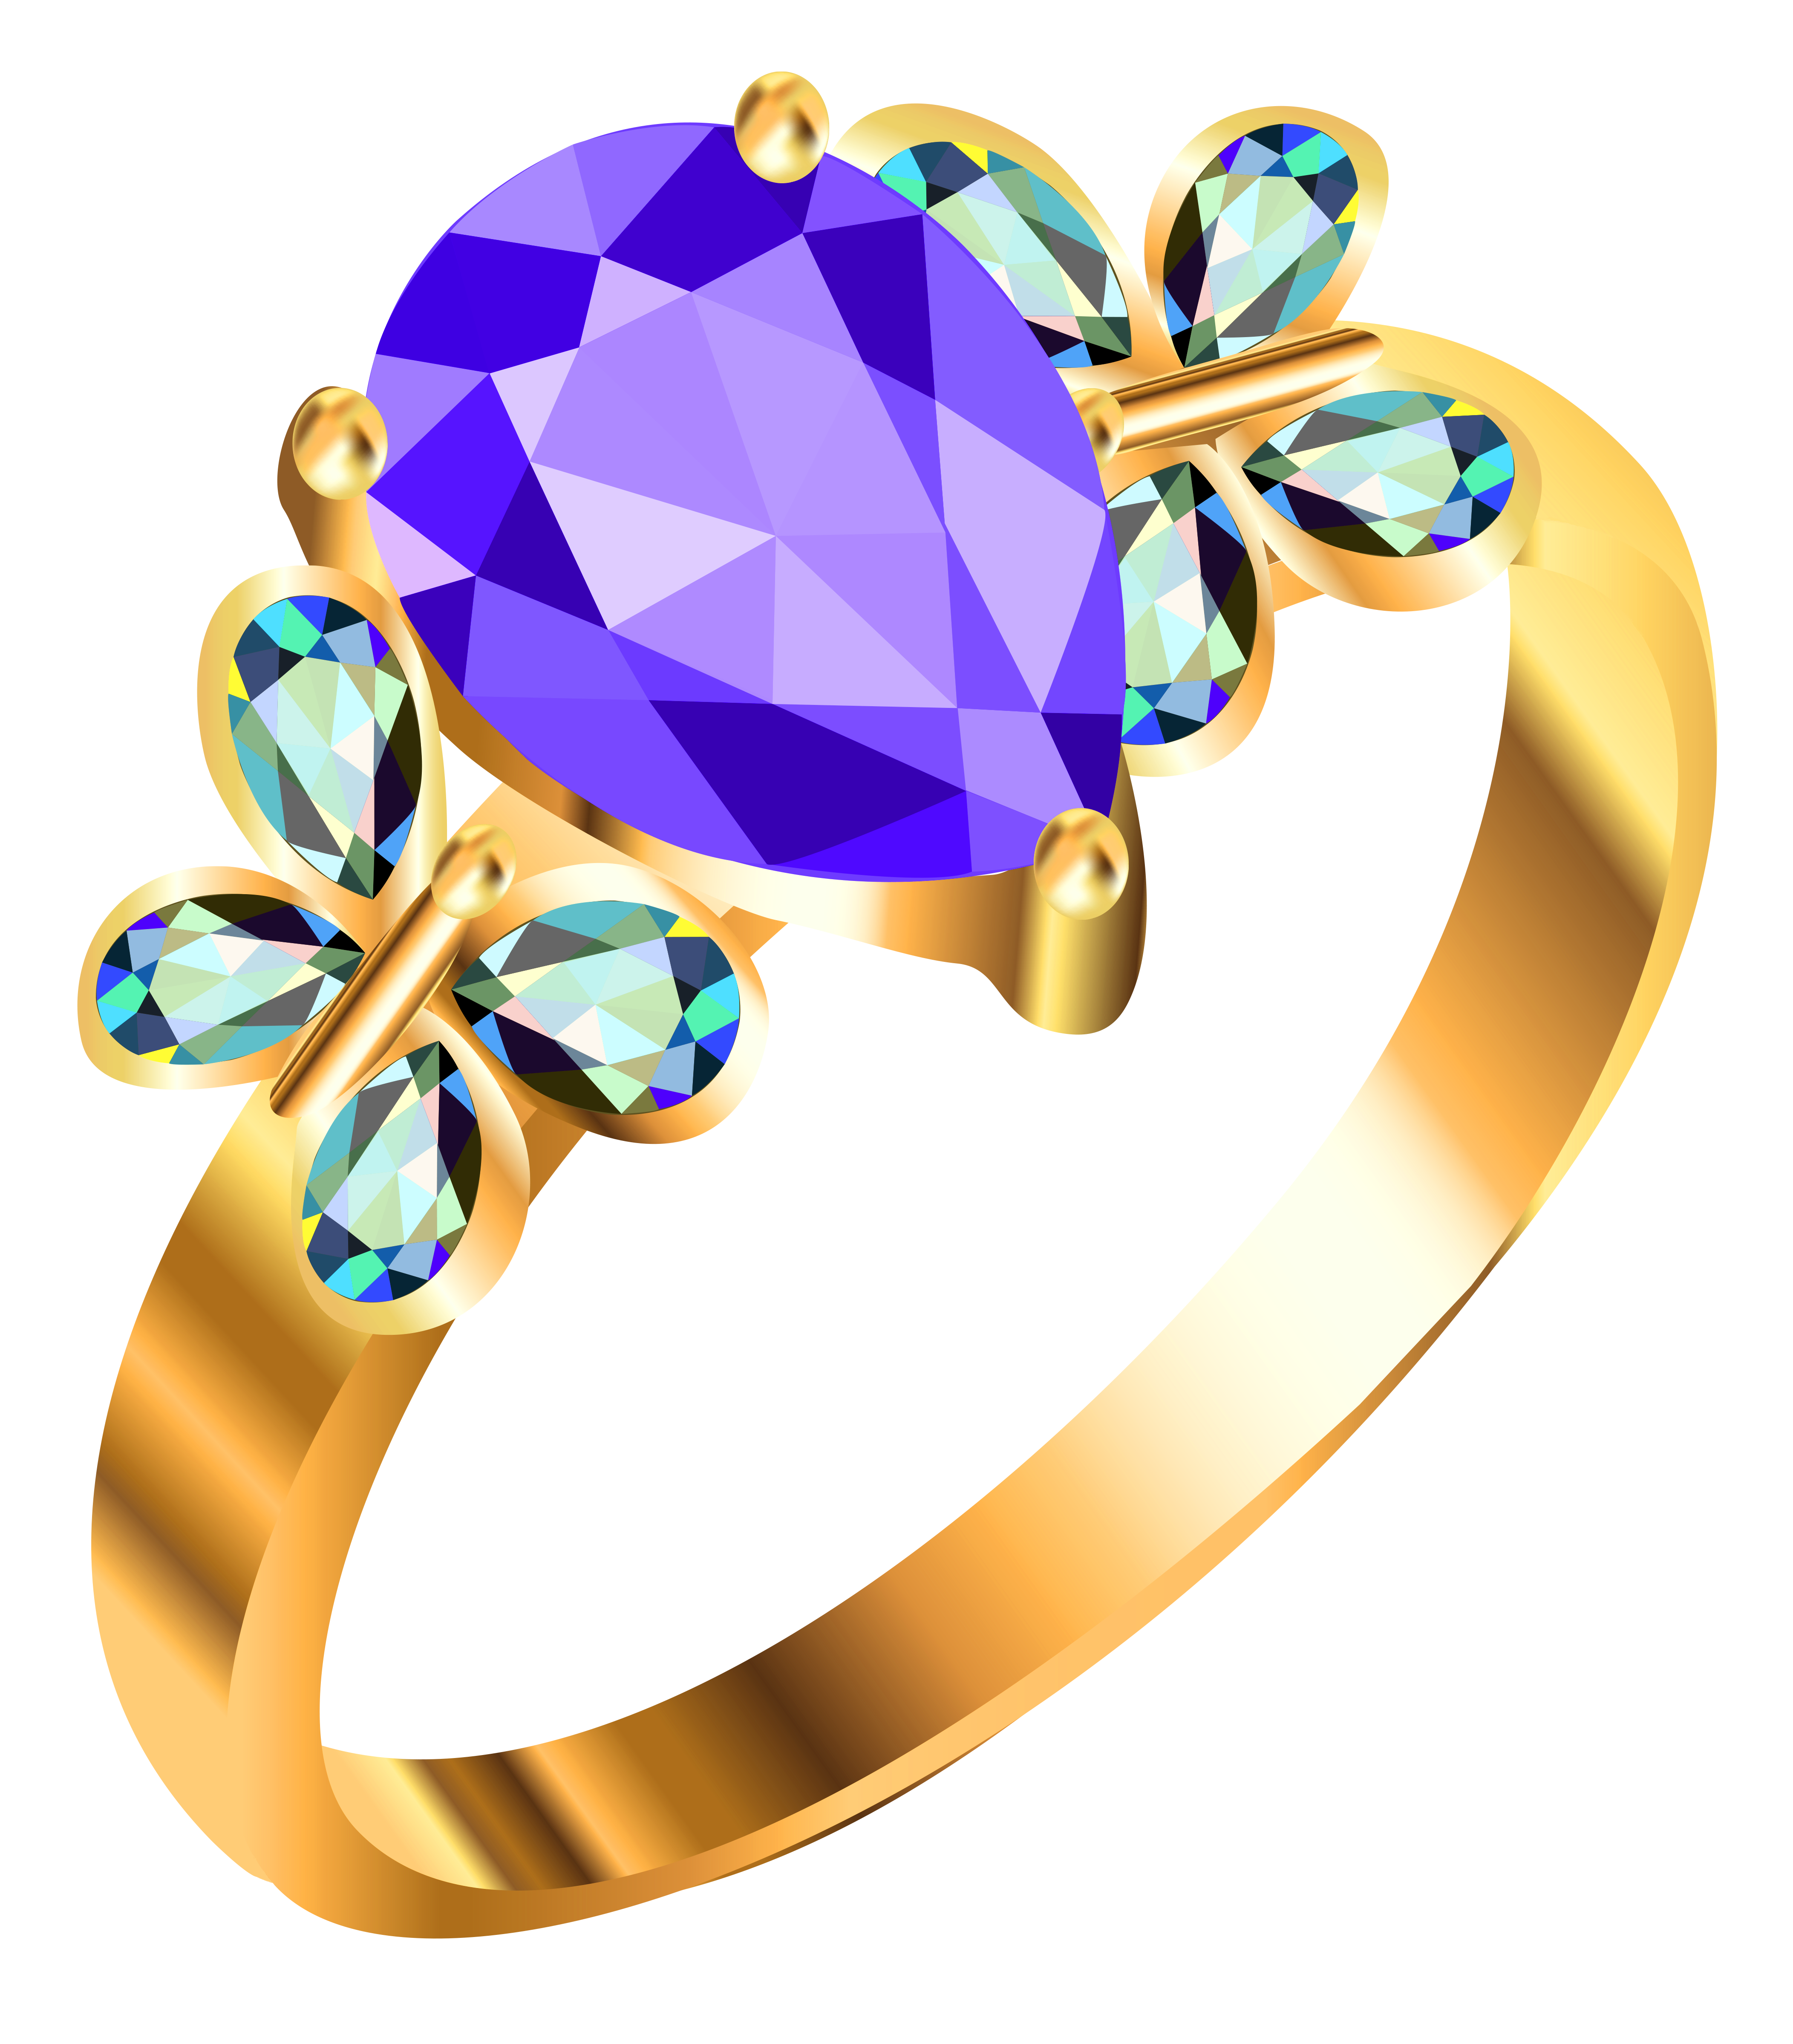 Tags or labels on a ring clipart png. Gold with blue andpurple